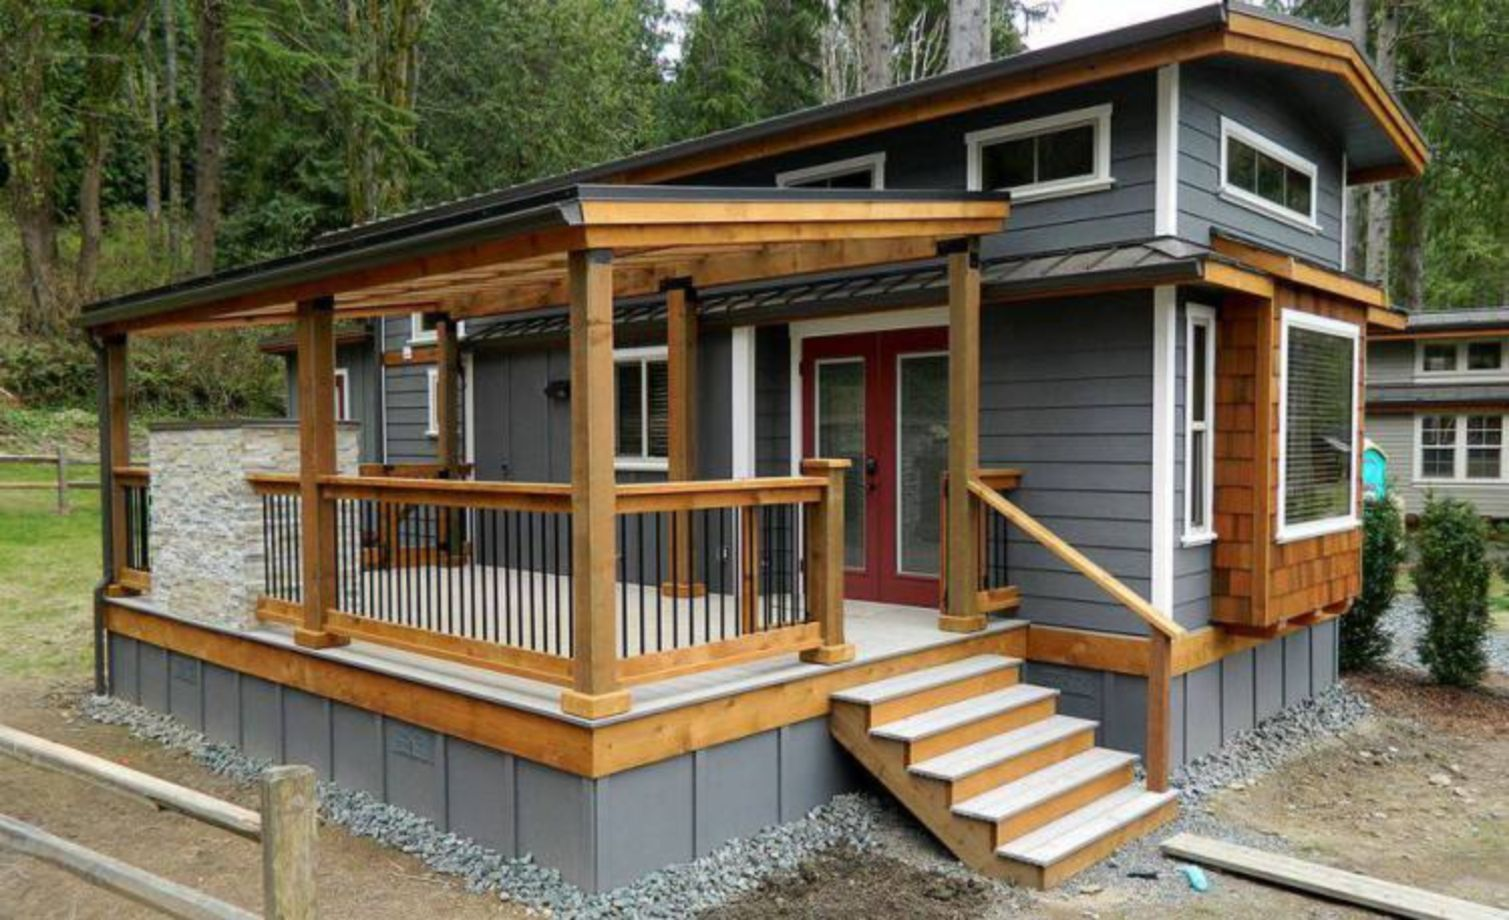 40 Exterior Paint Color Ideas For Mobile Homes ...